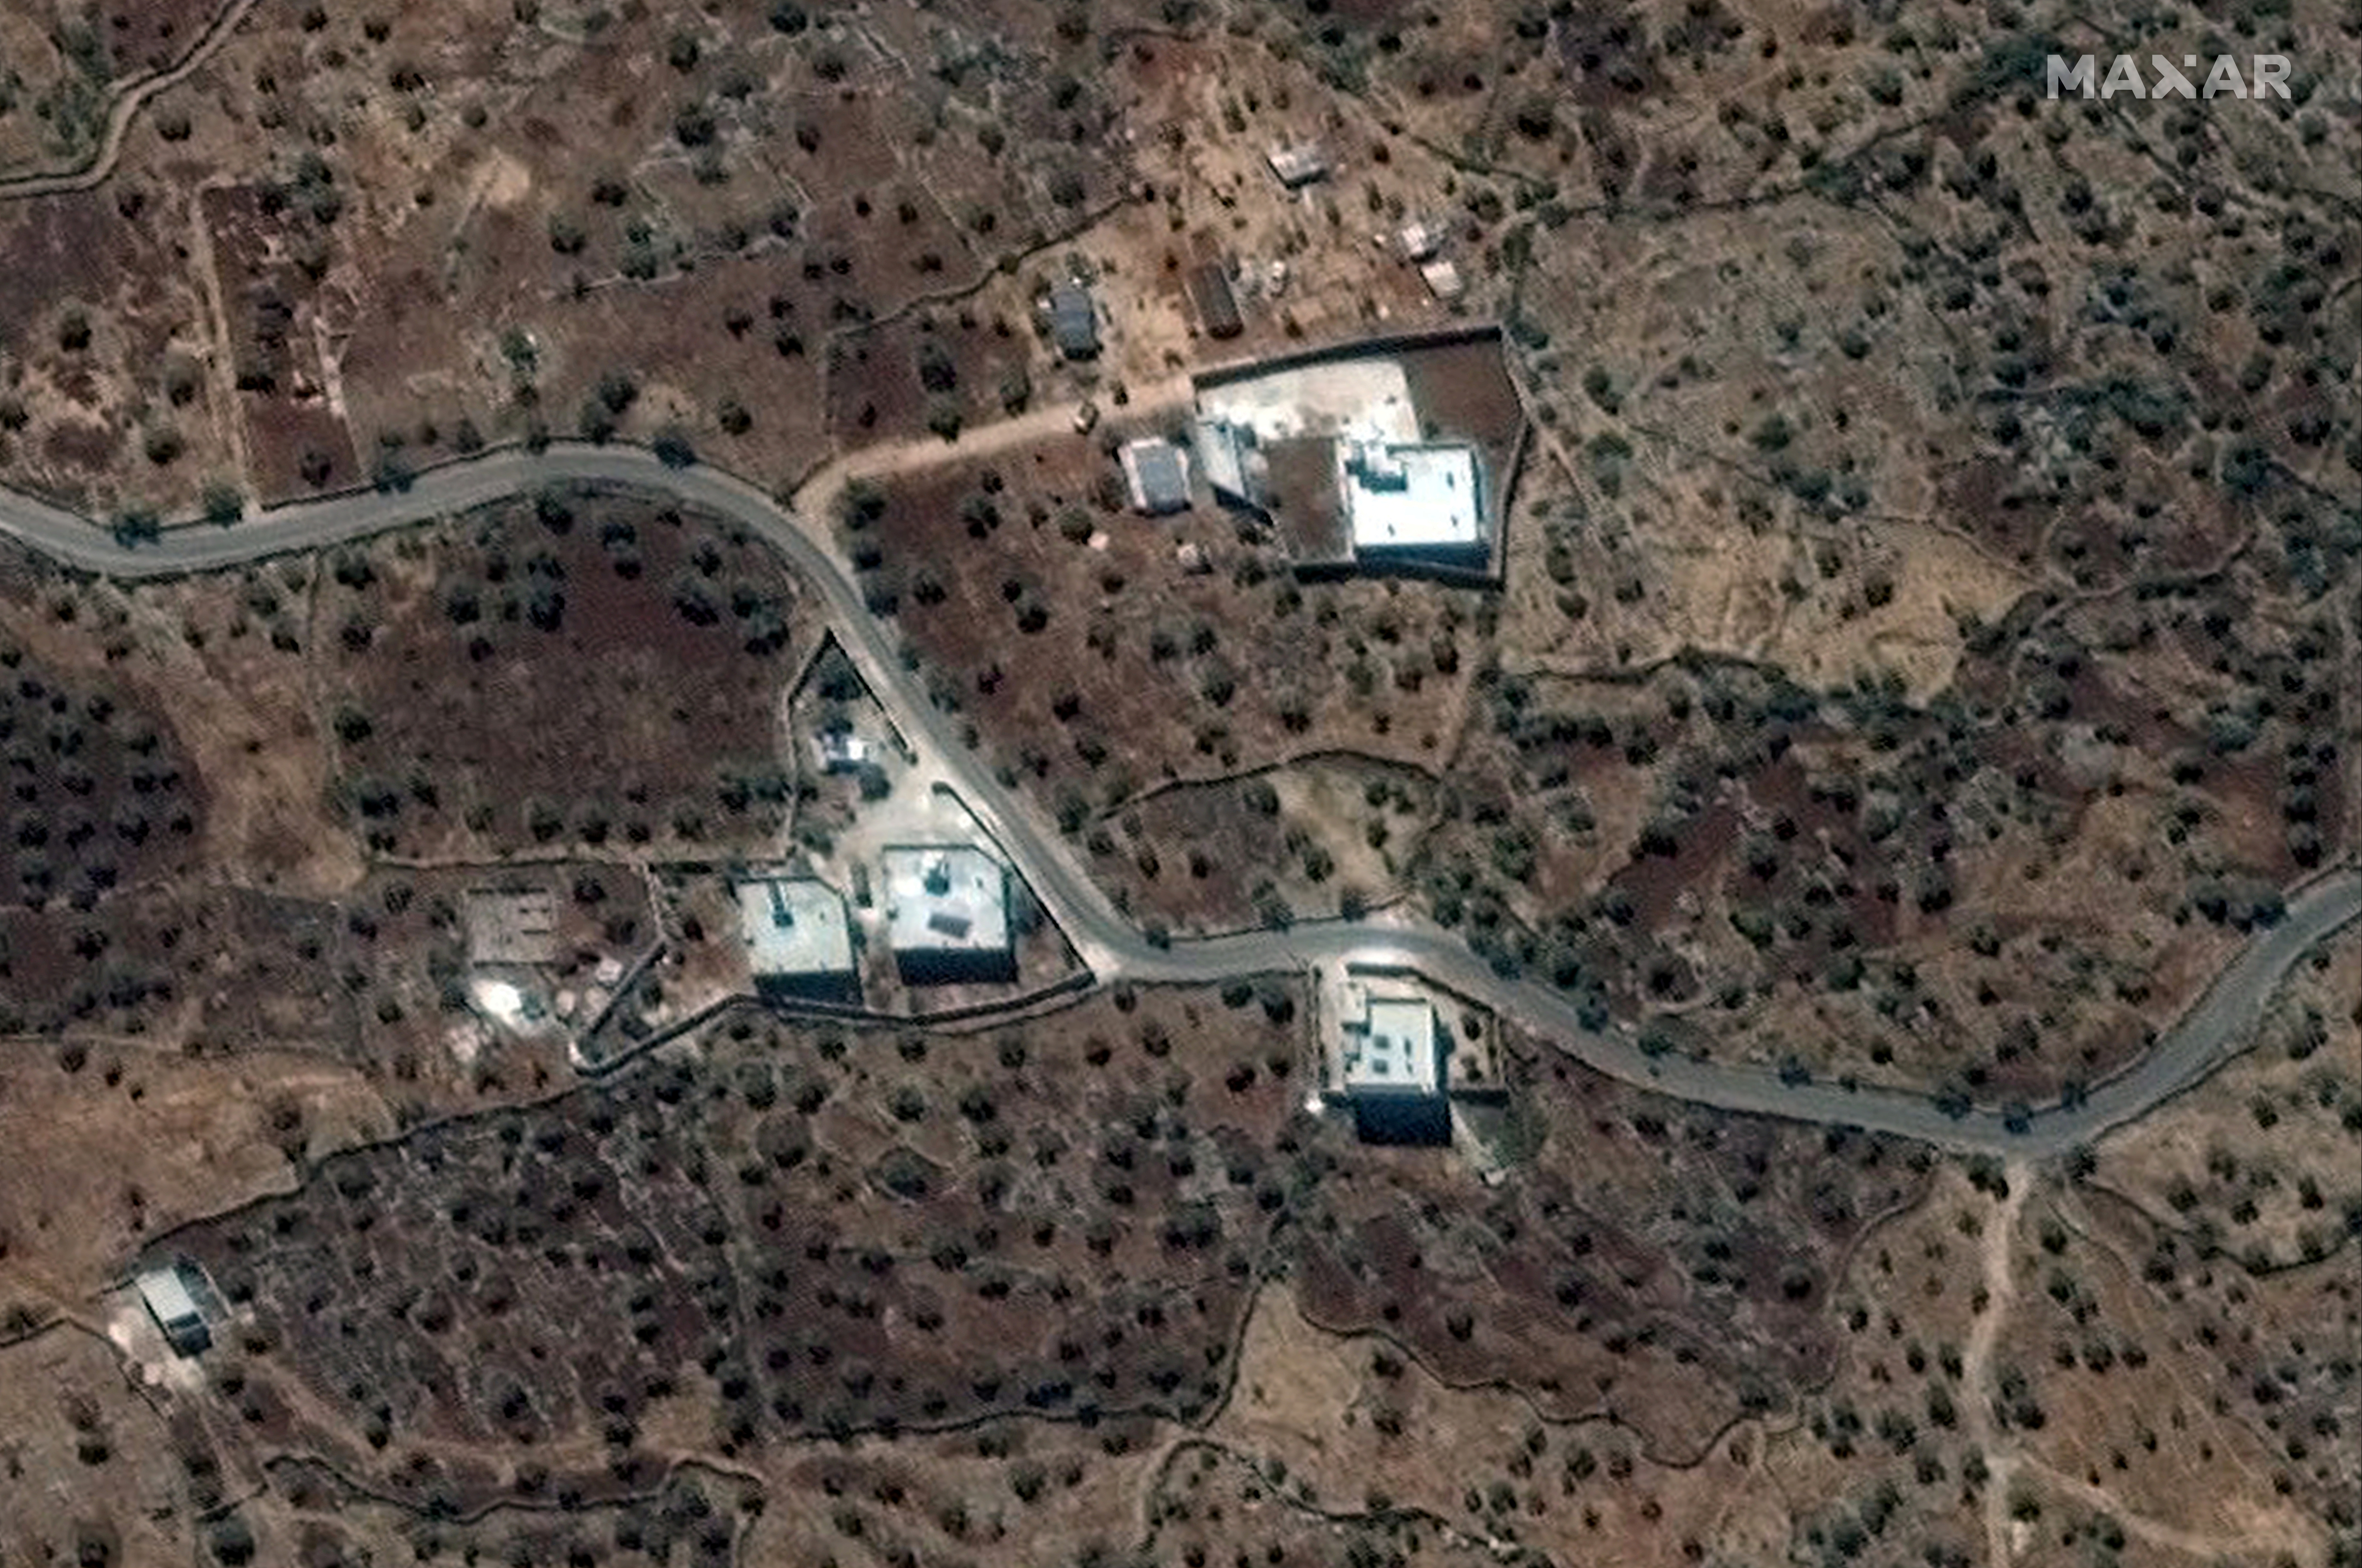 A satellite view of the reported residence of ISIS leader, Abu Bakr al-Baghdadi, according to the source, near the village of Barisha, Syria, collected on September 28, 2019, is shown in this handout image released on October 27, 2019 by Maxar Technologies. Maxar Technologies/Handout via REUTERS